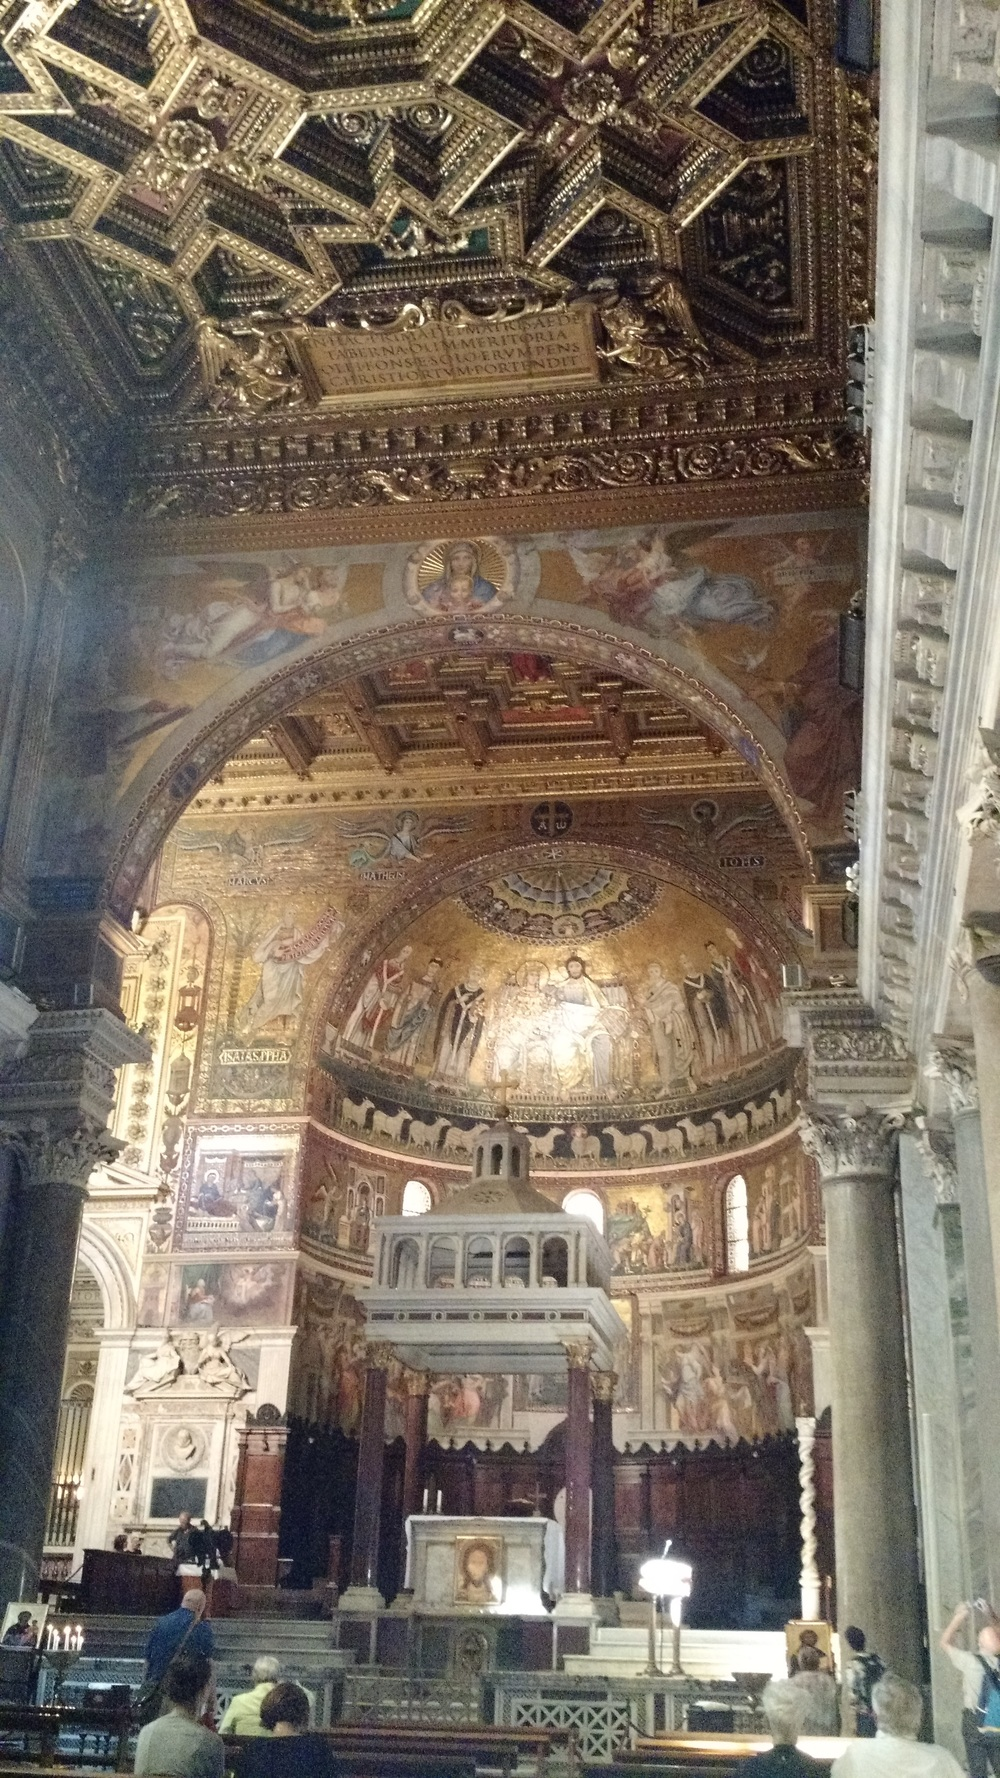 One of Rome's first religious sites - Sant Maria in Trastevere